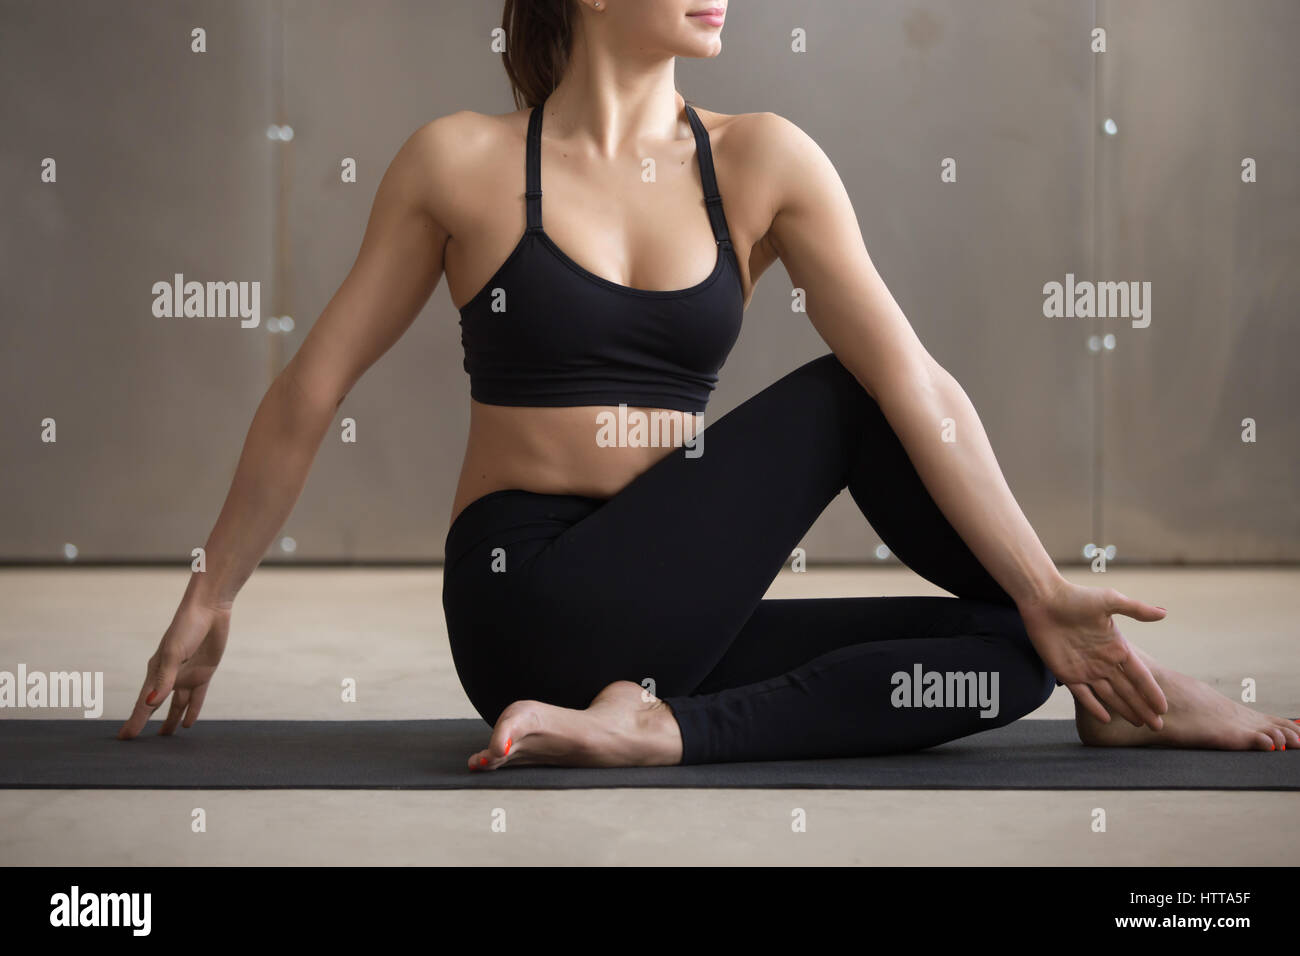 Young woman in Ardha Matsyendrasana pose, grey studio background - Stock Image